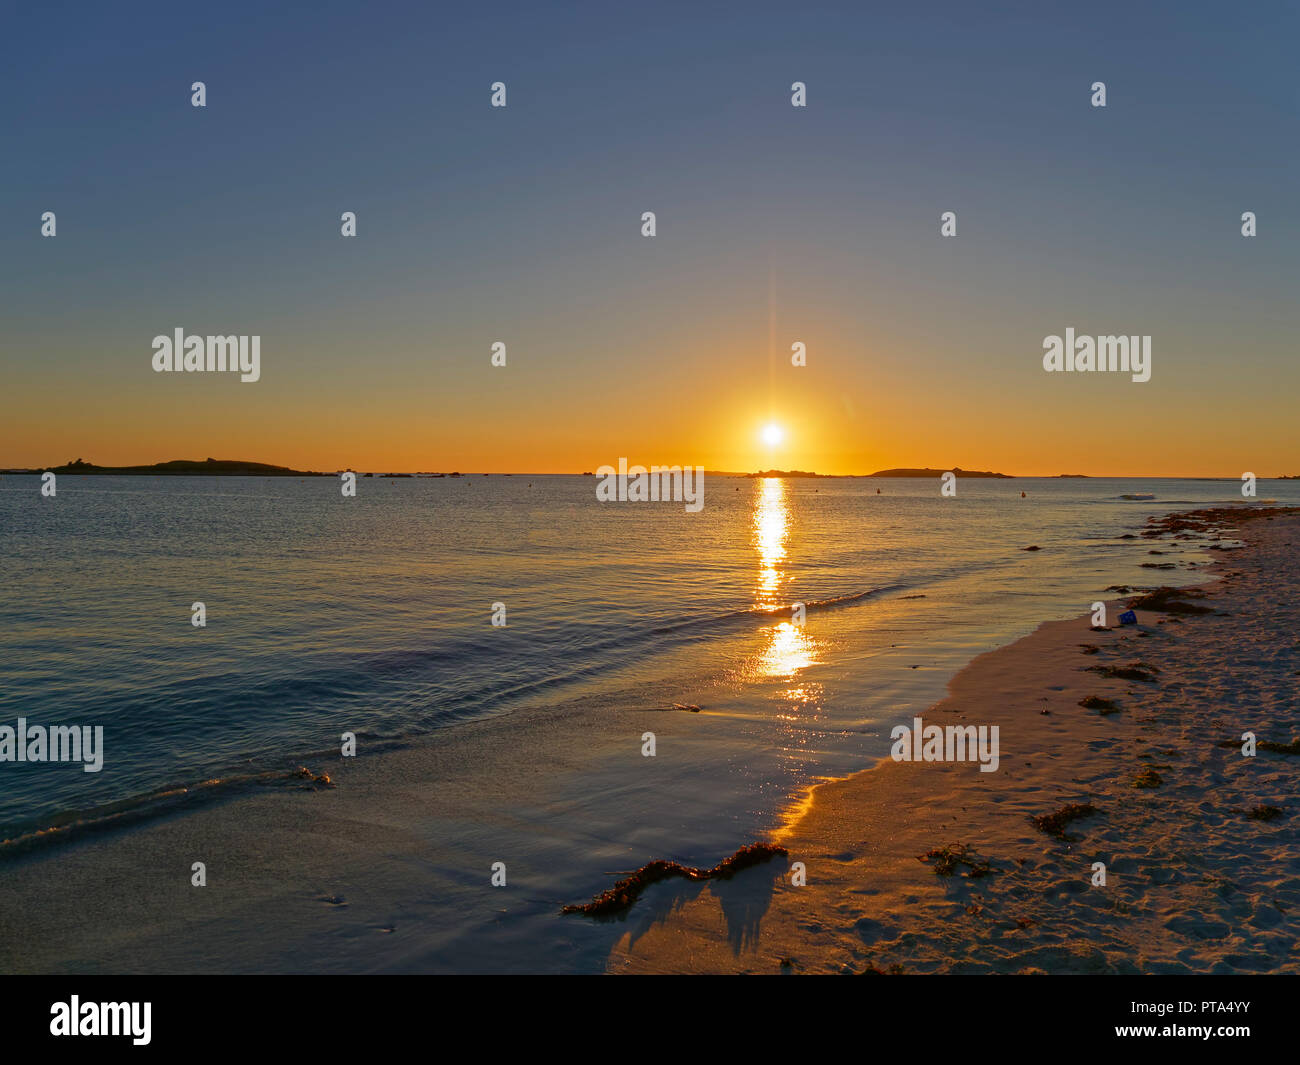 On a beach the setting sun reflects of the waters of the English Channel at Landeda, Brittany. Stock Photo